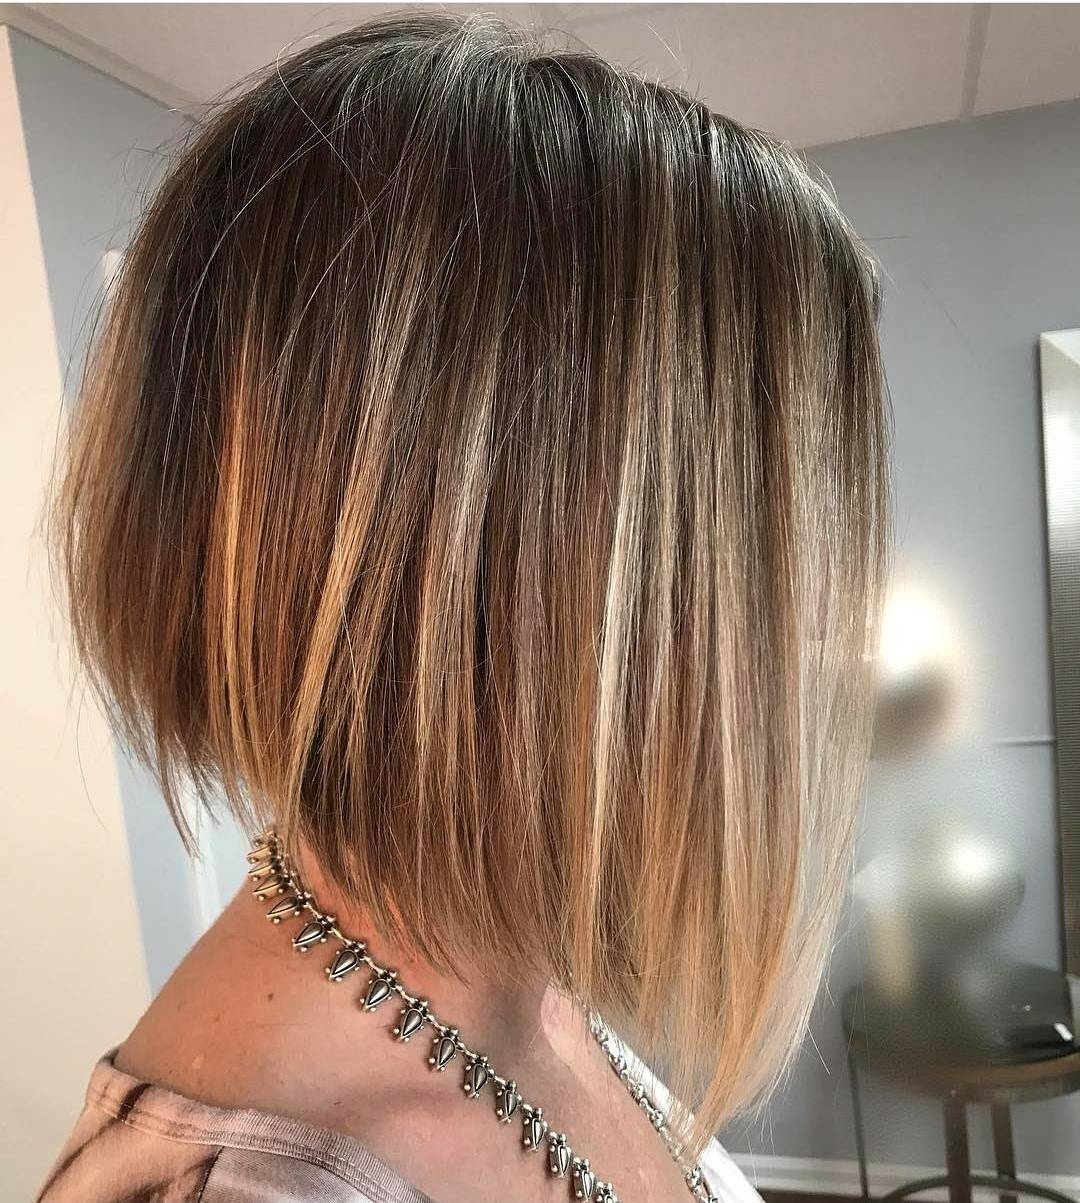 Hairstyles For Short Hair Easy To Do 101